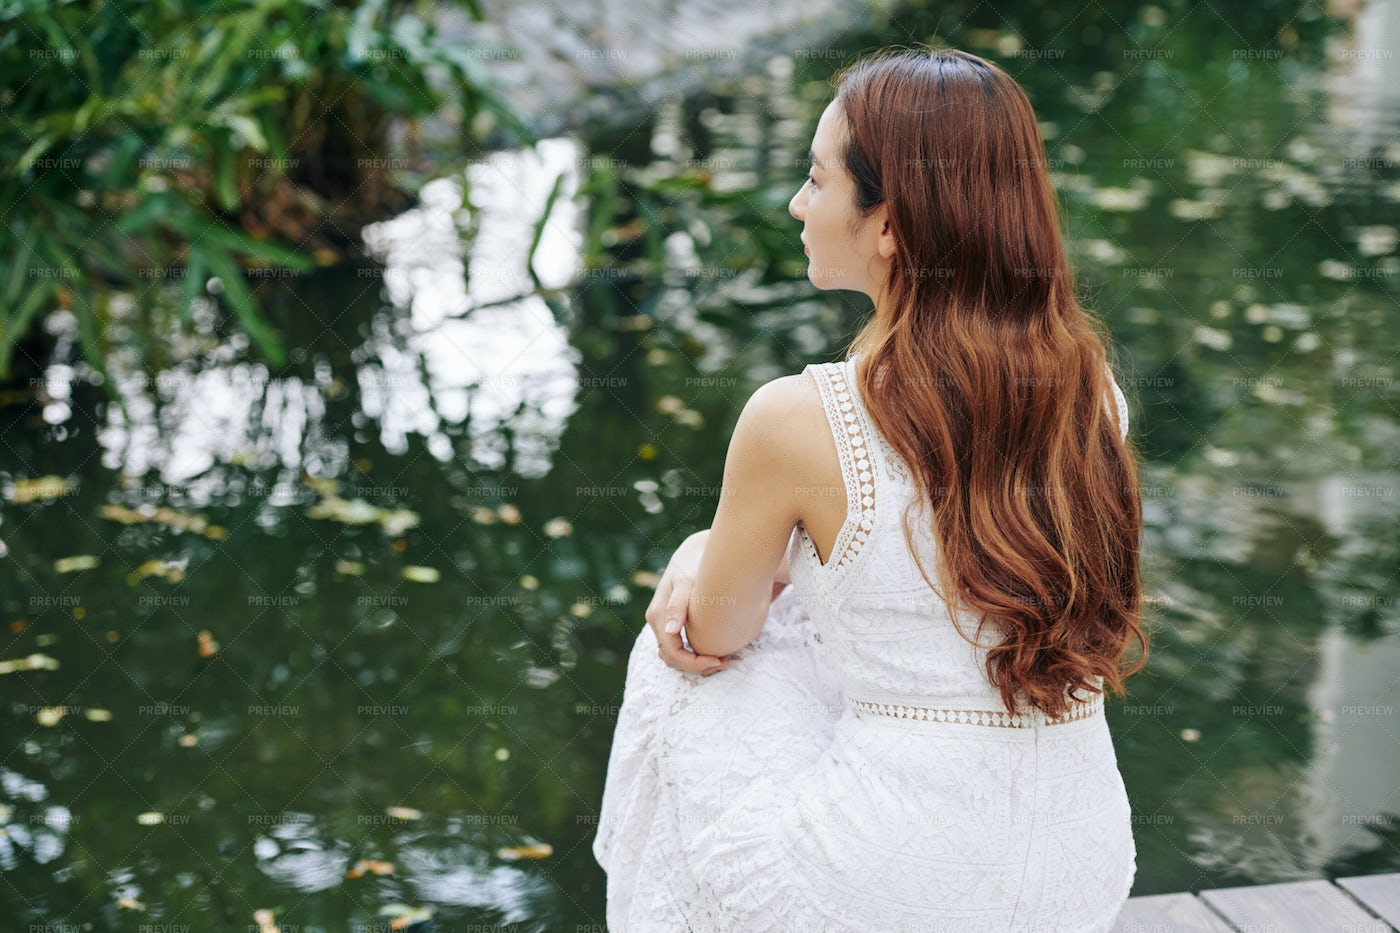 Dreamy Woman Looking At Pond: Stock Photos